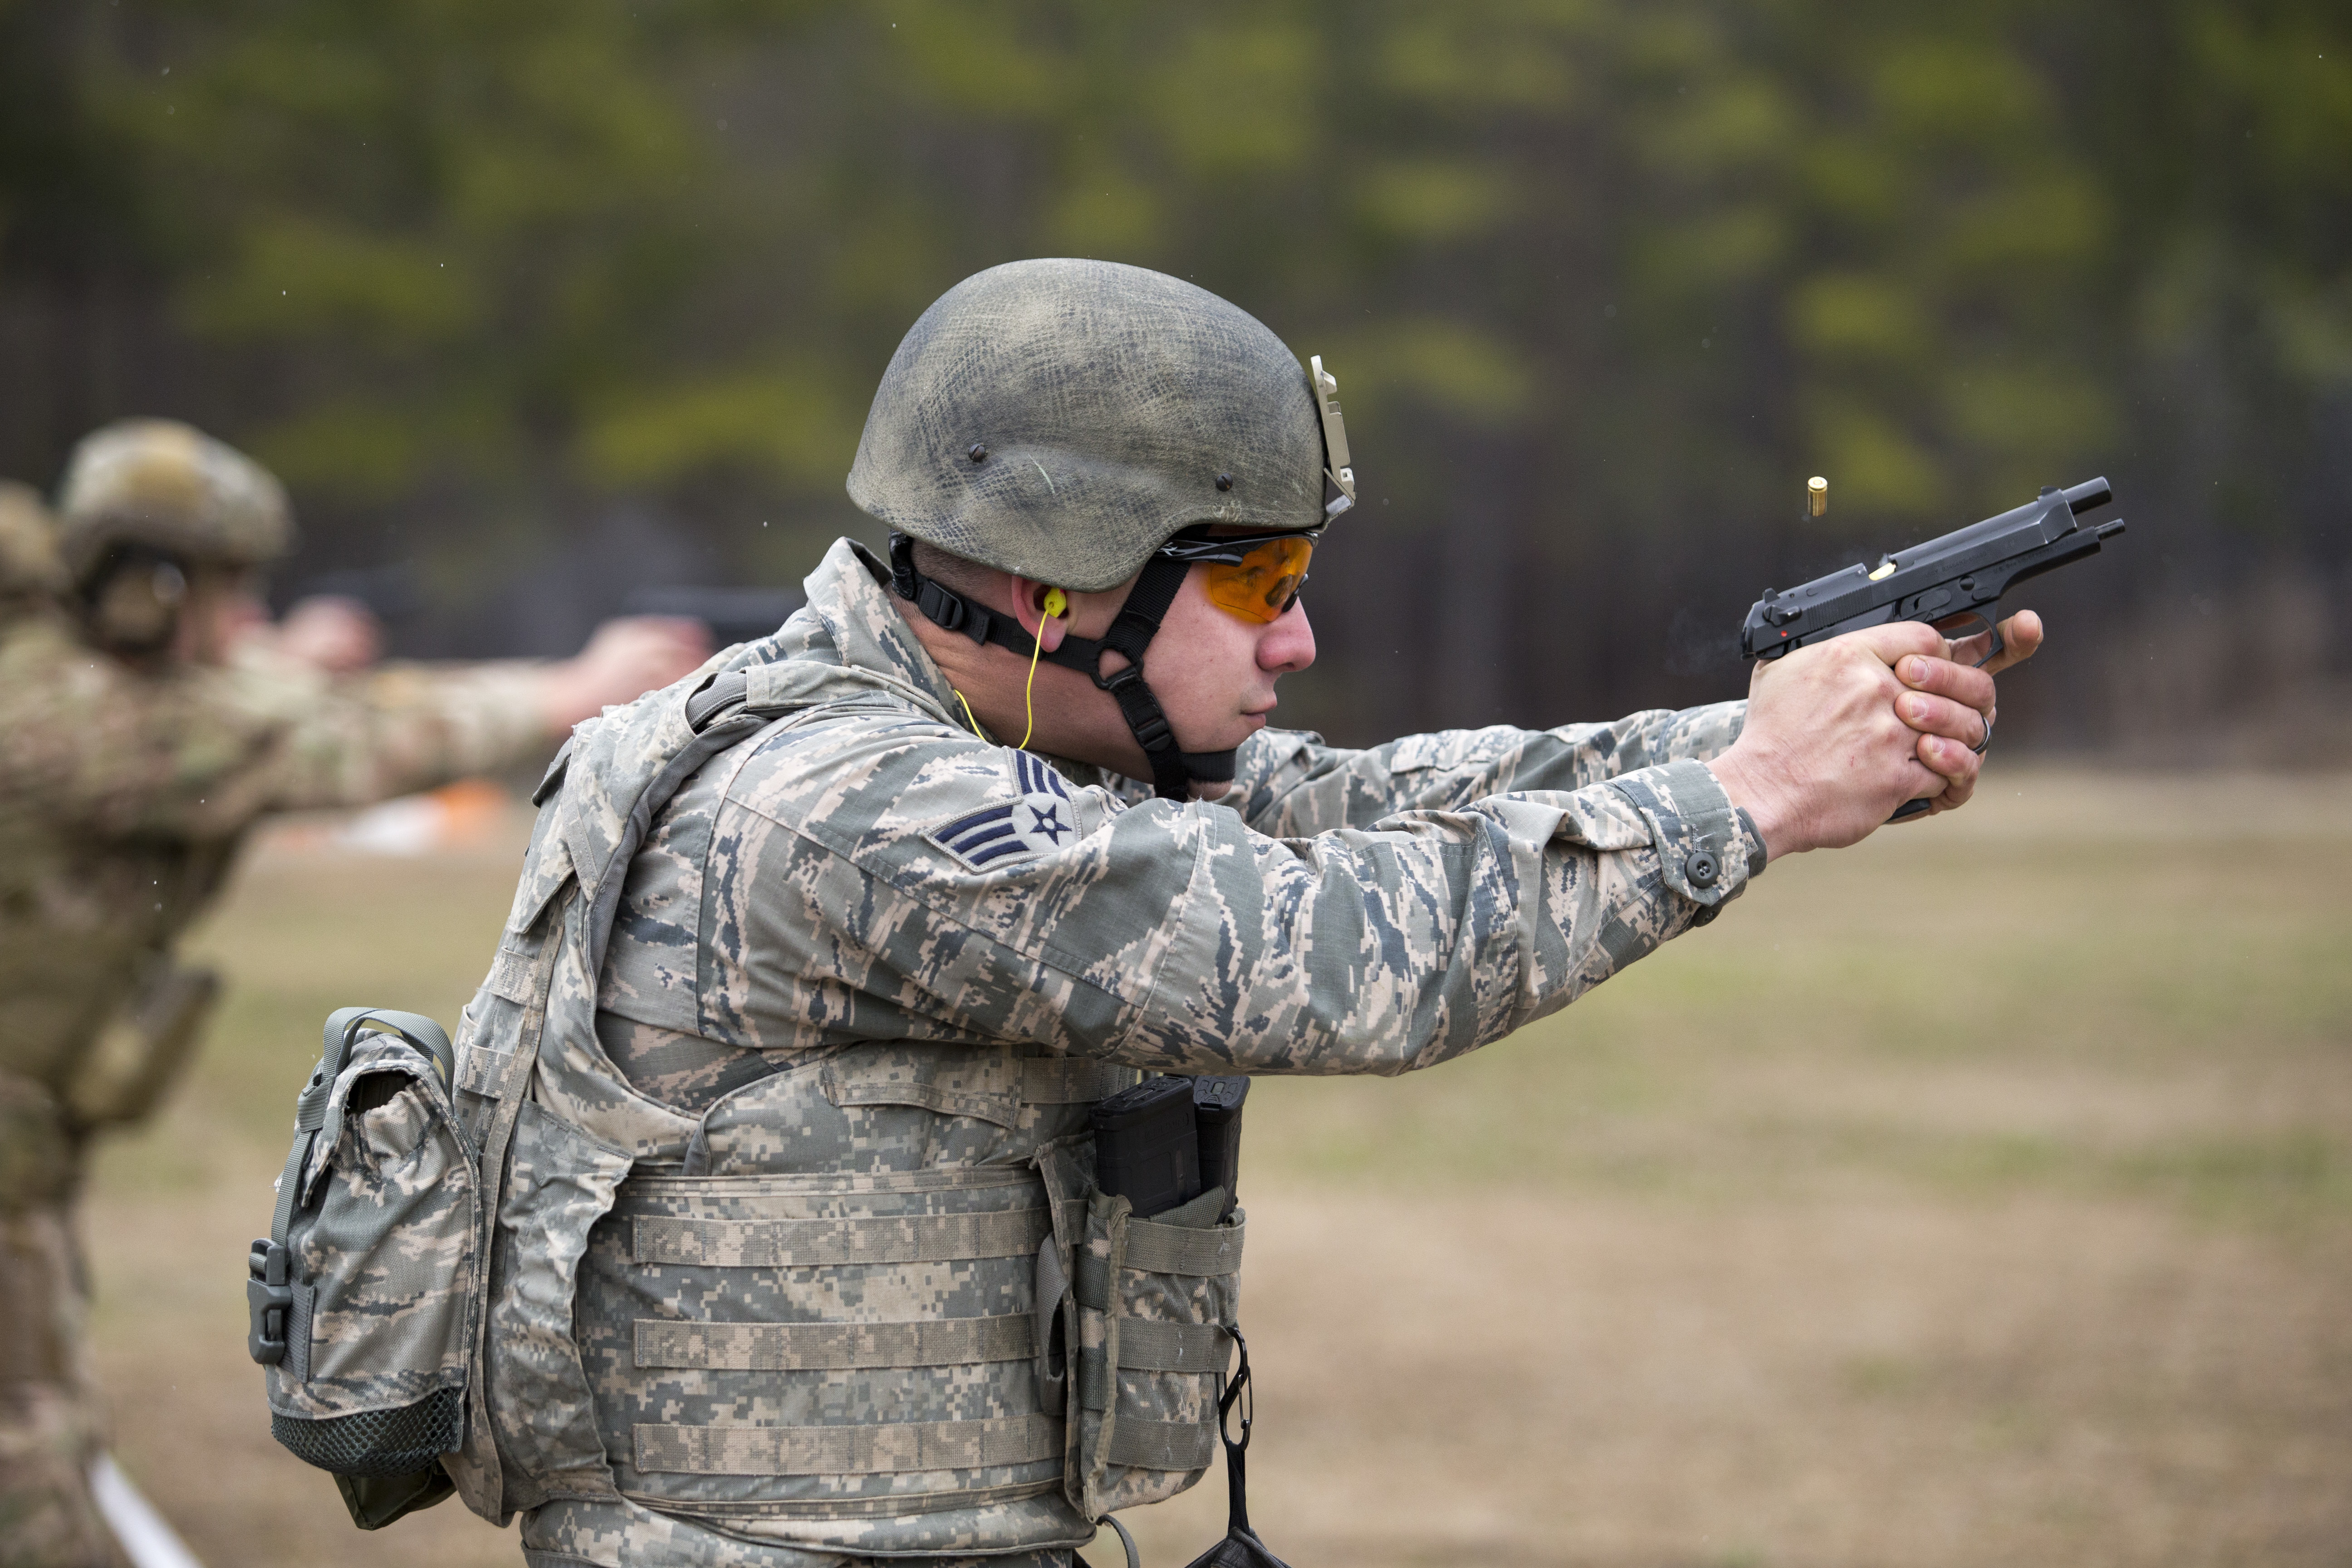 Ggtc georgia national guard - File Marksmen Compete In Honor Of Georgia Veteran And Amputee 150228 Z Pa893